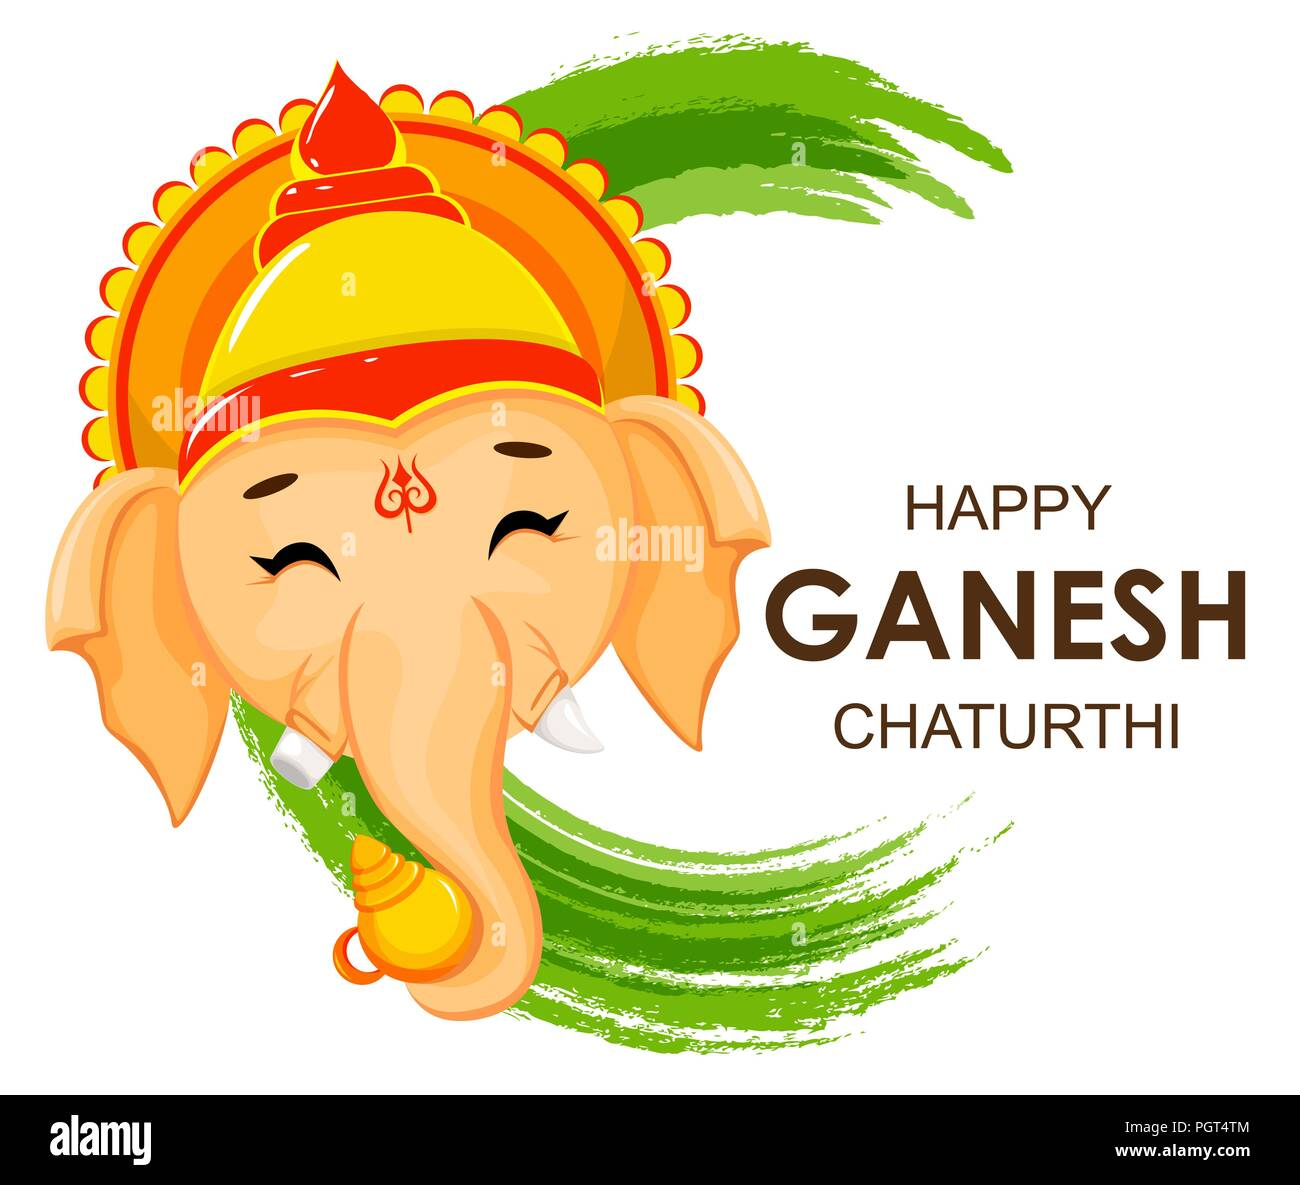 Happy ganesh chaturthi greeting card for traditional indian festival happy ganesh chaturthi greeting card for traditional indian festival face of lord ganesha in cartoon style vector illustration on green watercolor b m4hsunfo